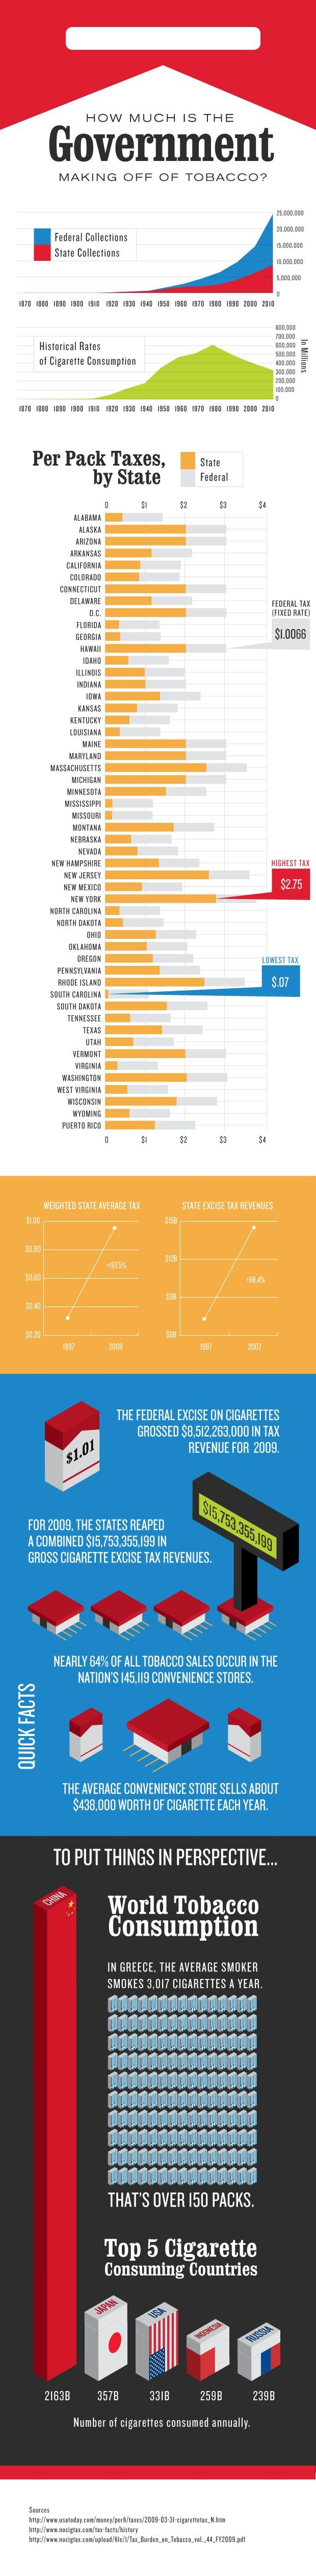 How Much is the Government Making off of Tobacco